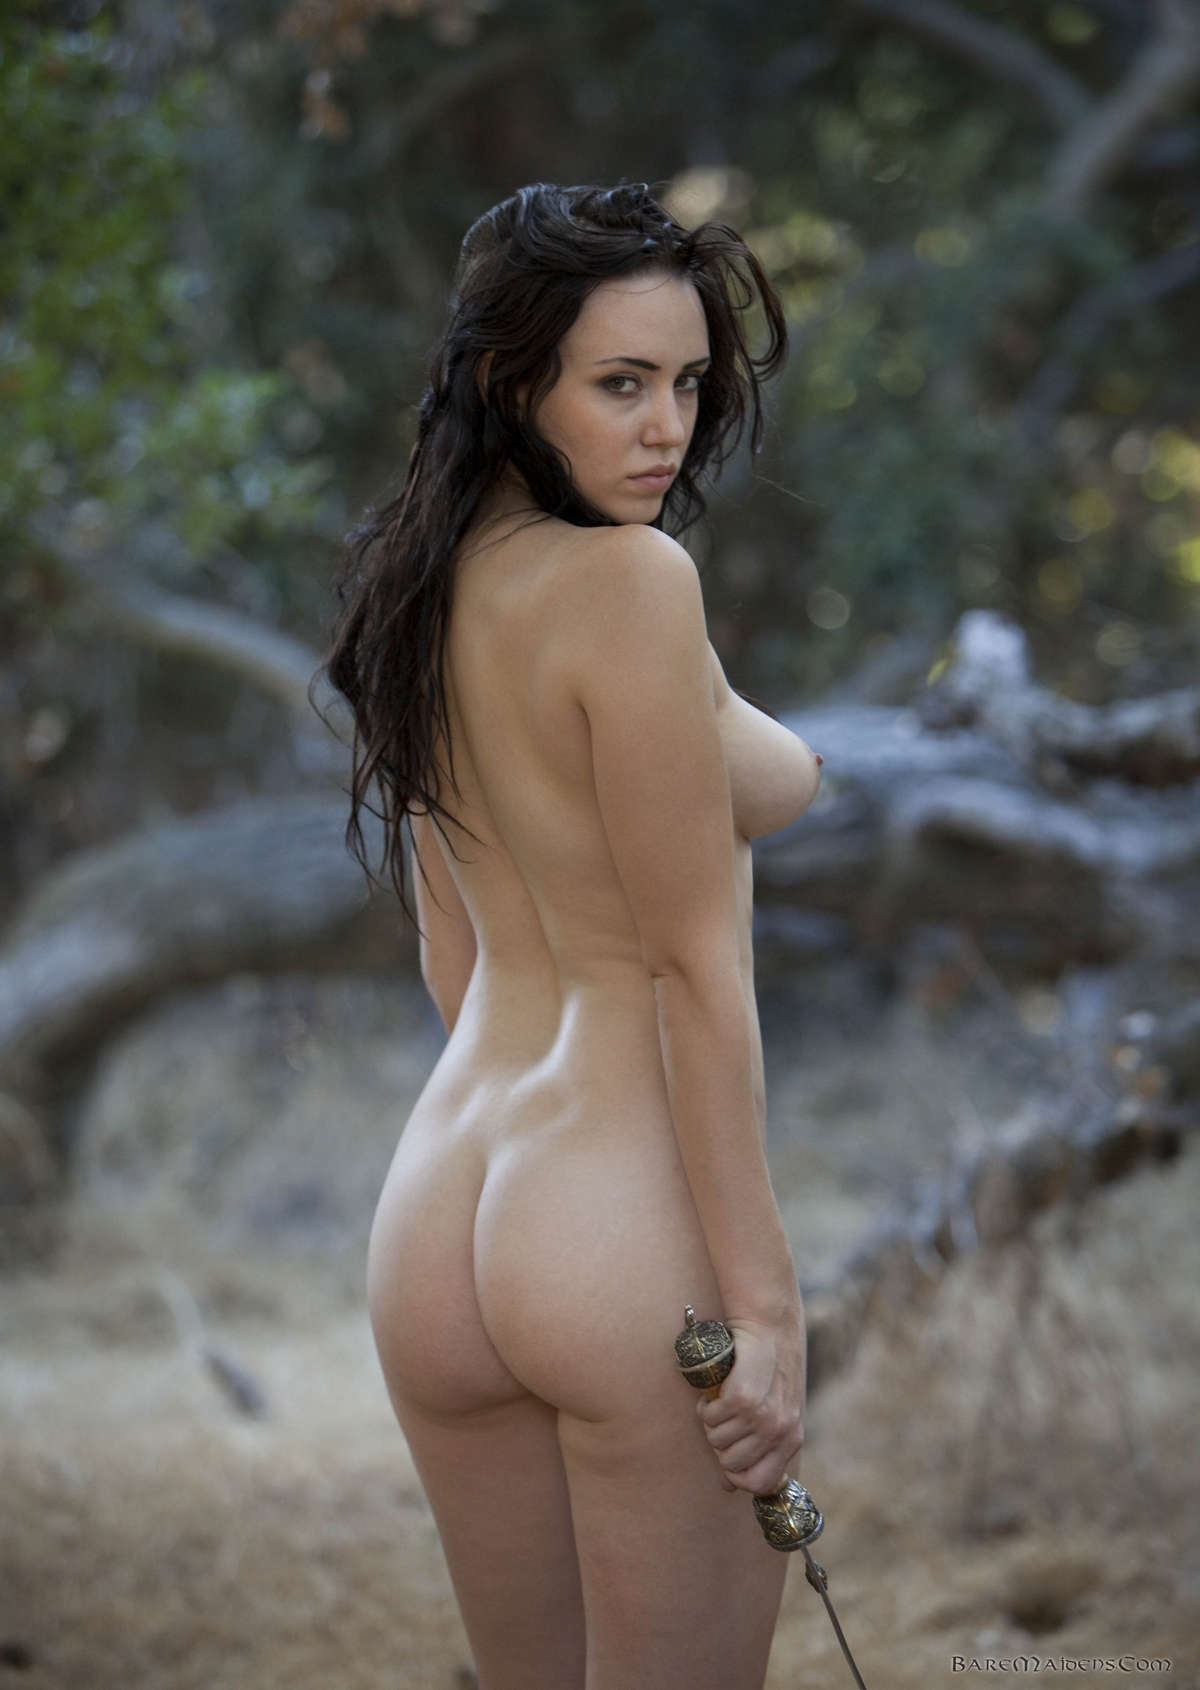 naked pictures of hot girls having sex